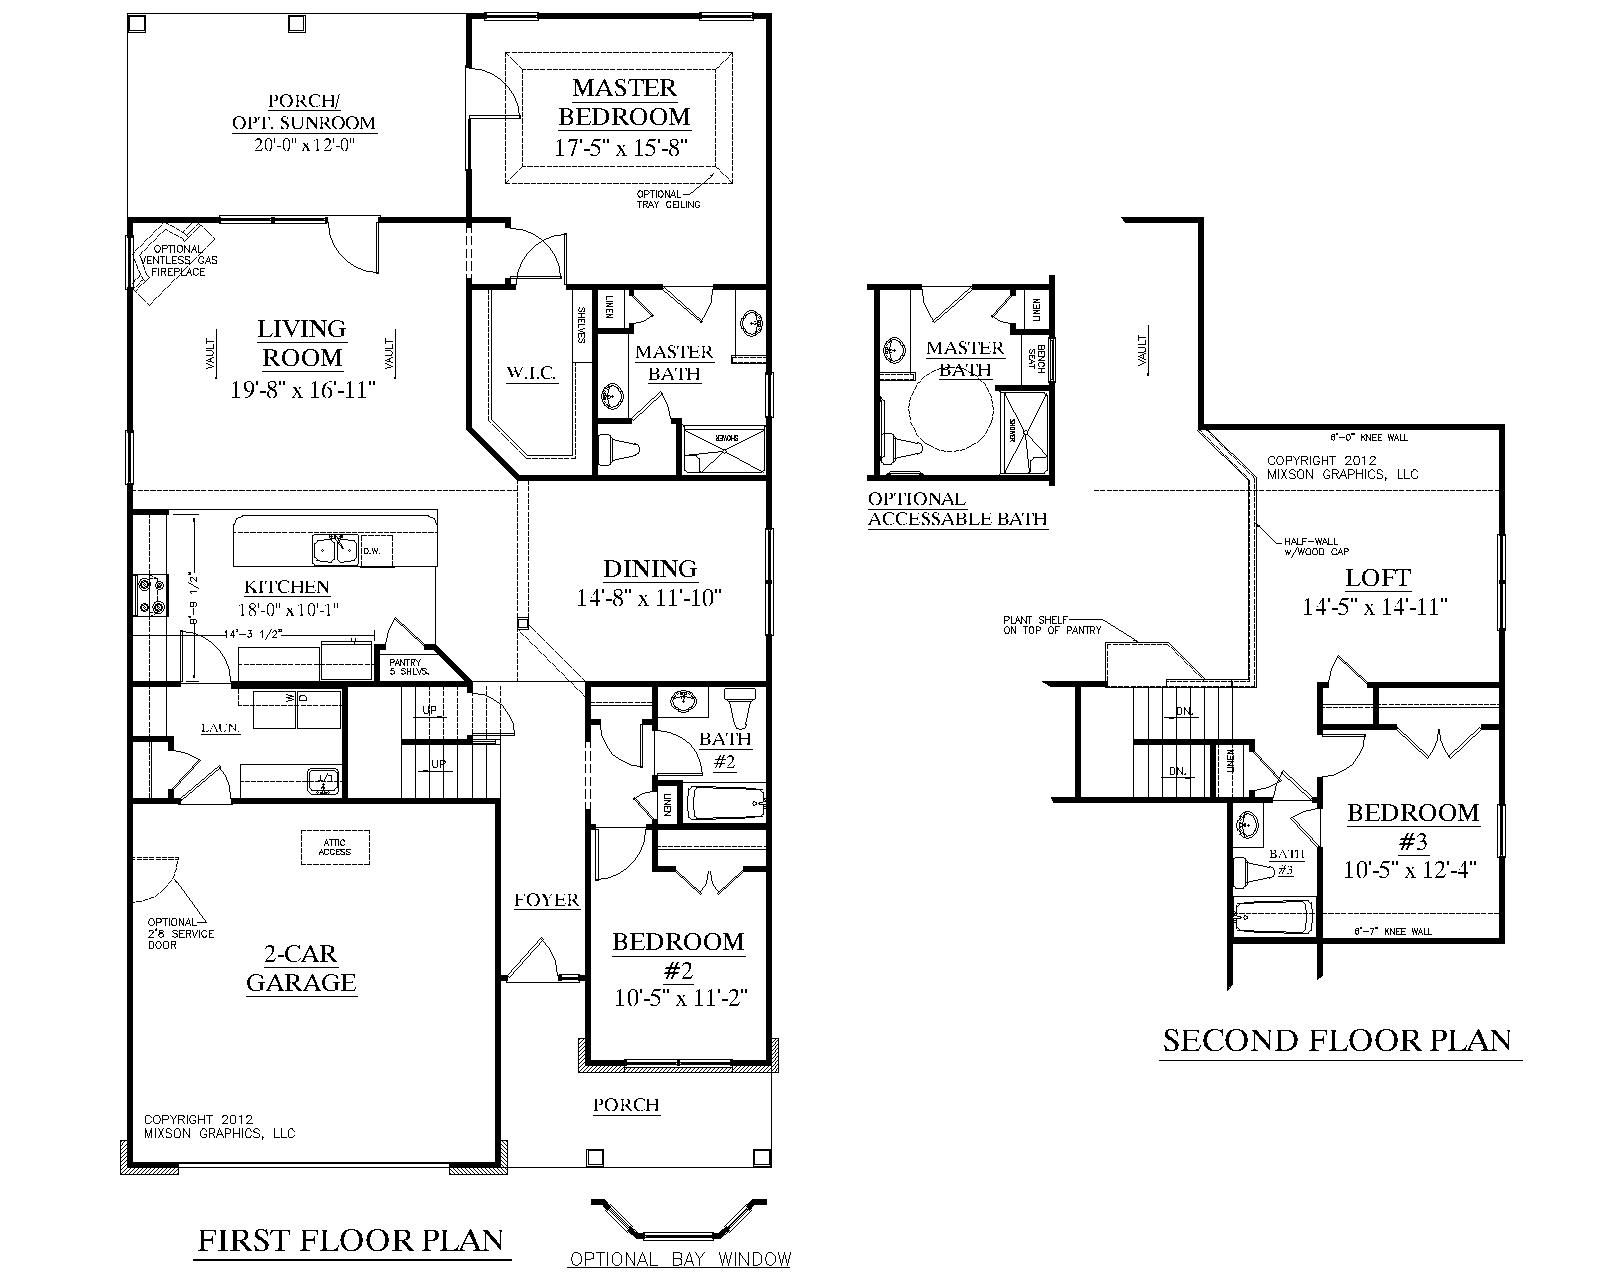 house plan 2224 kingstree floor plan traditional 1 12 story house - Small 3 Bedroom House Plans